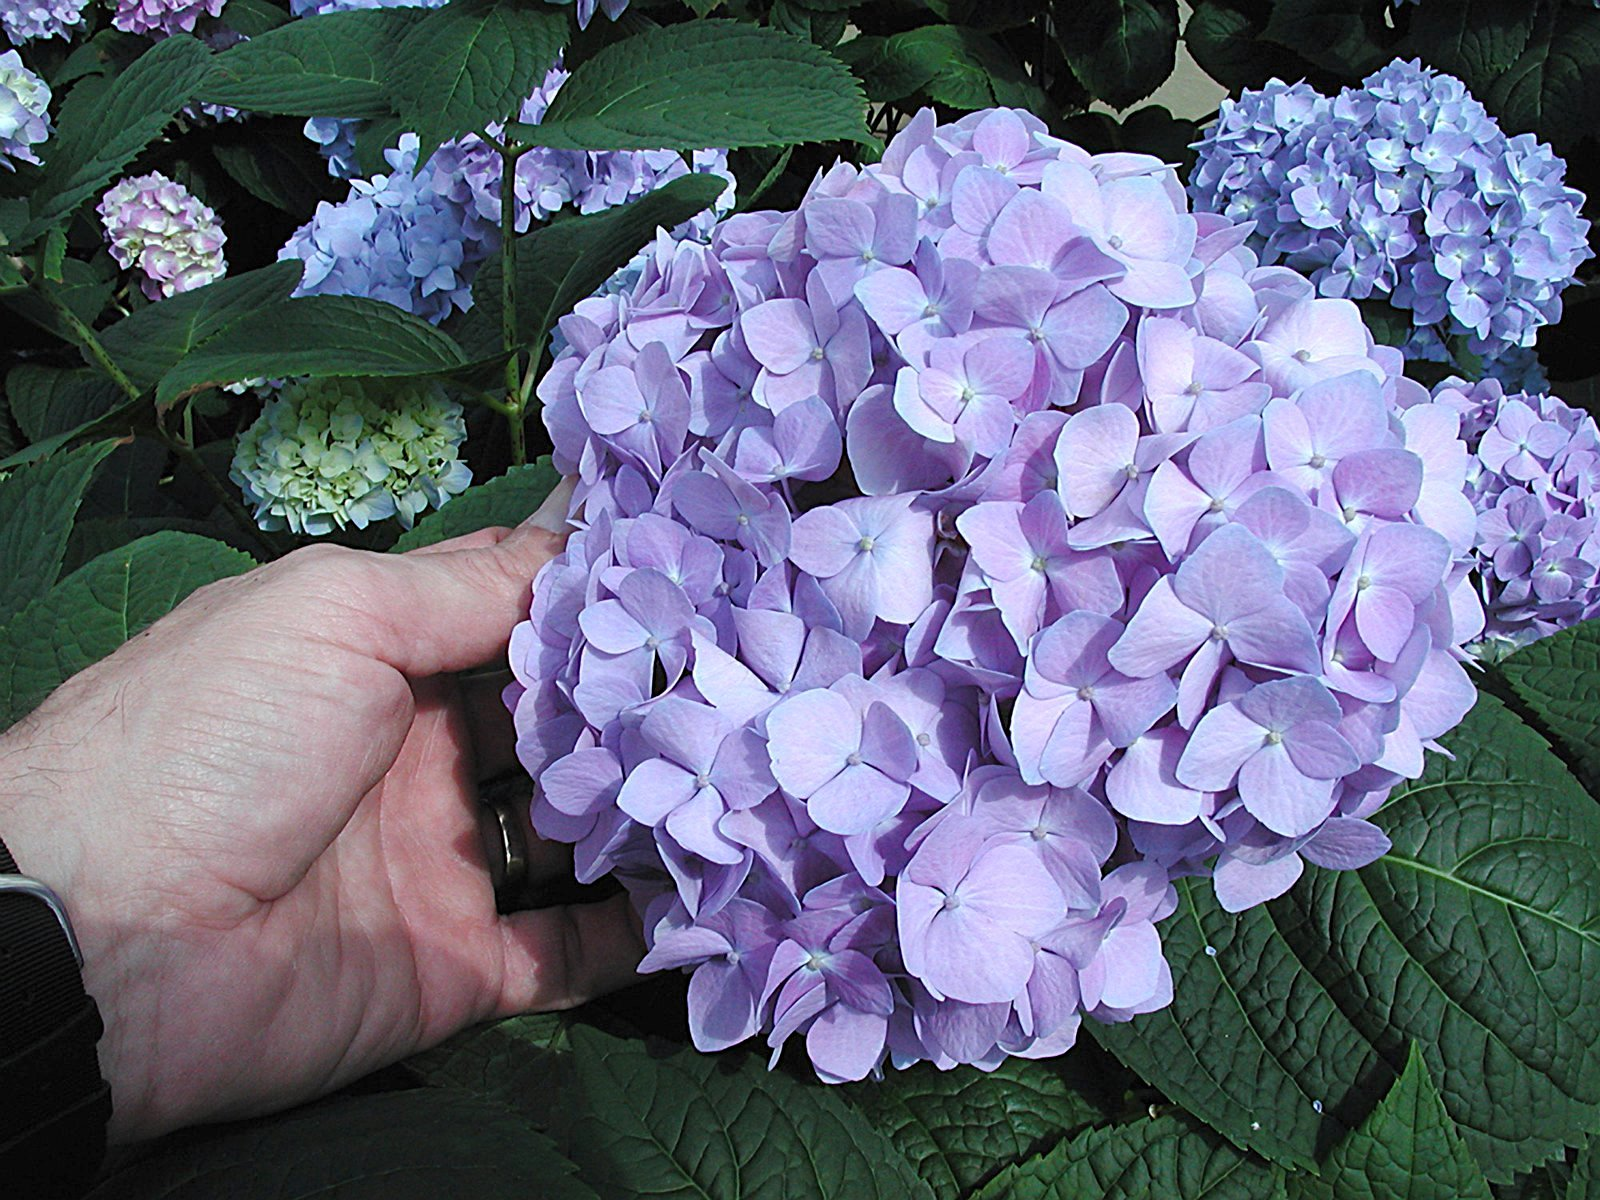 Hydrangeas can be both landscape plants and potted plants. Known for their pom-pom shape, hydrangea bloom colors can be changed by adding sulfur or lime to the soil.